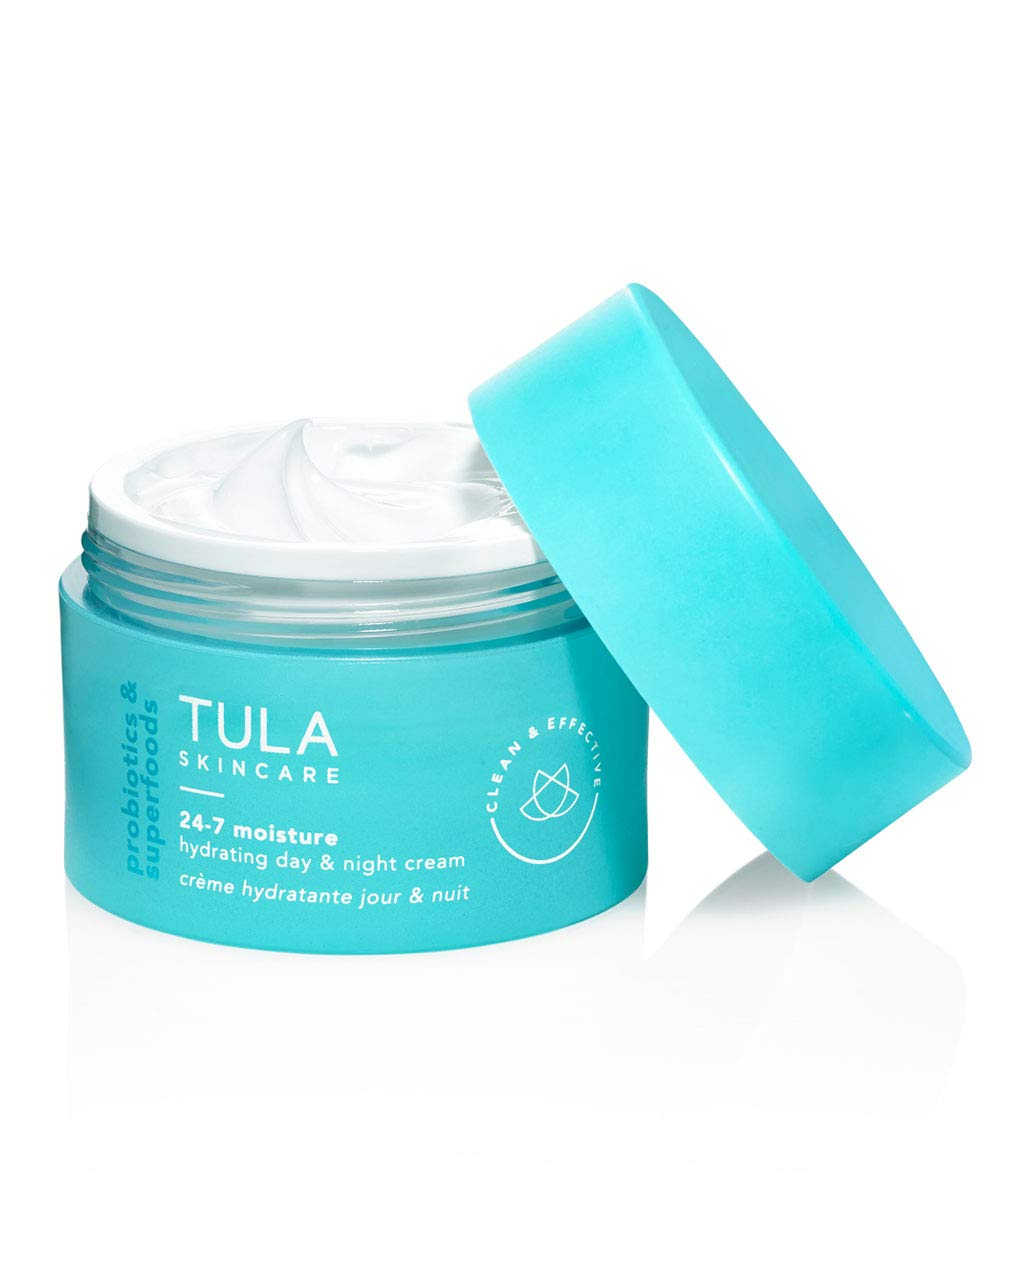 TULA Probiotic Skin Care 24-7 Moisture Hydrating Day and Night Cream | Moisturizer for Face, Anti Aging Face Cream, Contains Watermelon Fruit and Blueberry Extract | 1.5 oz